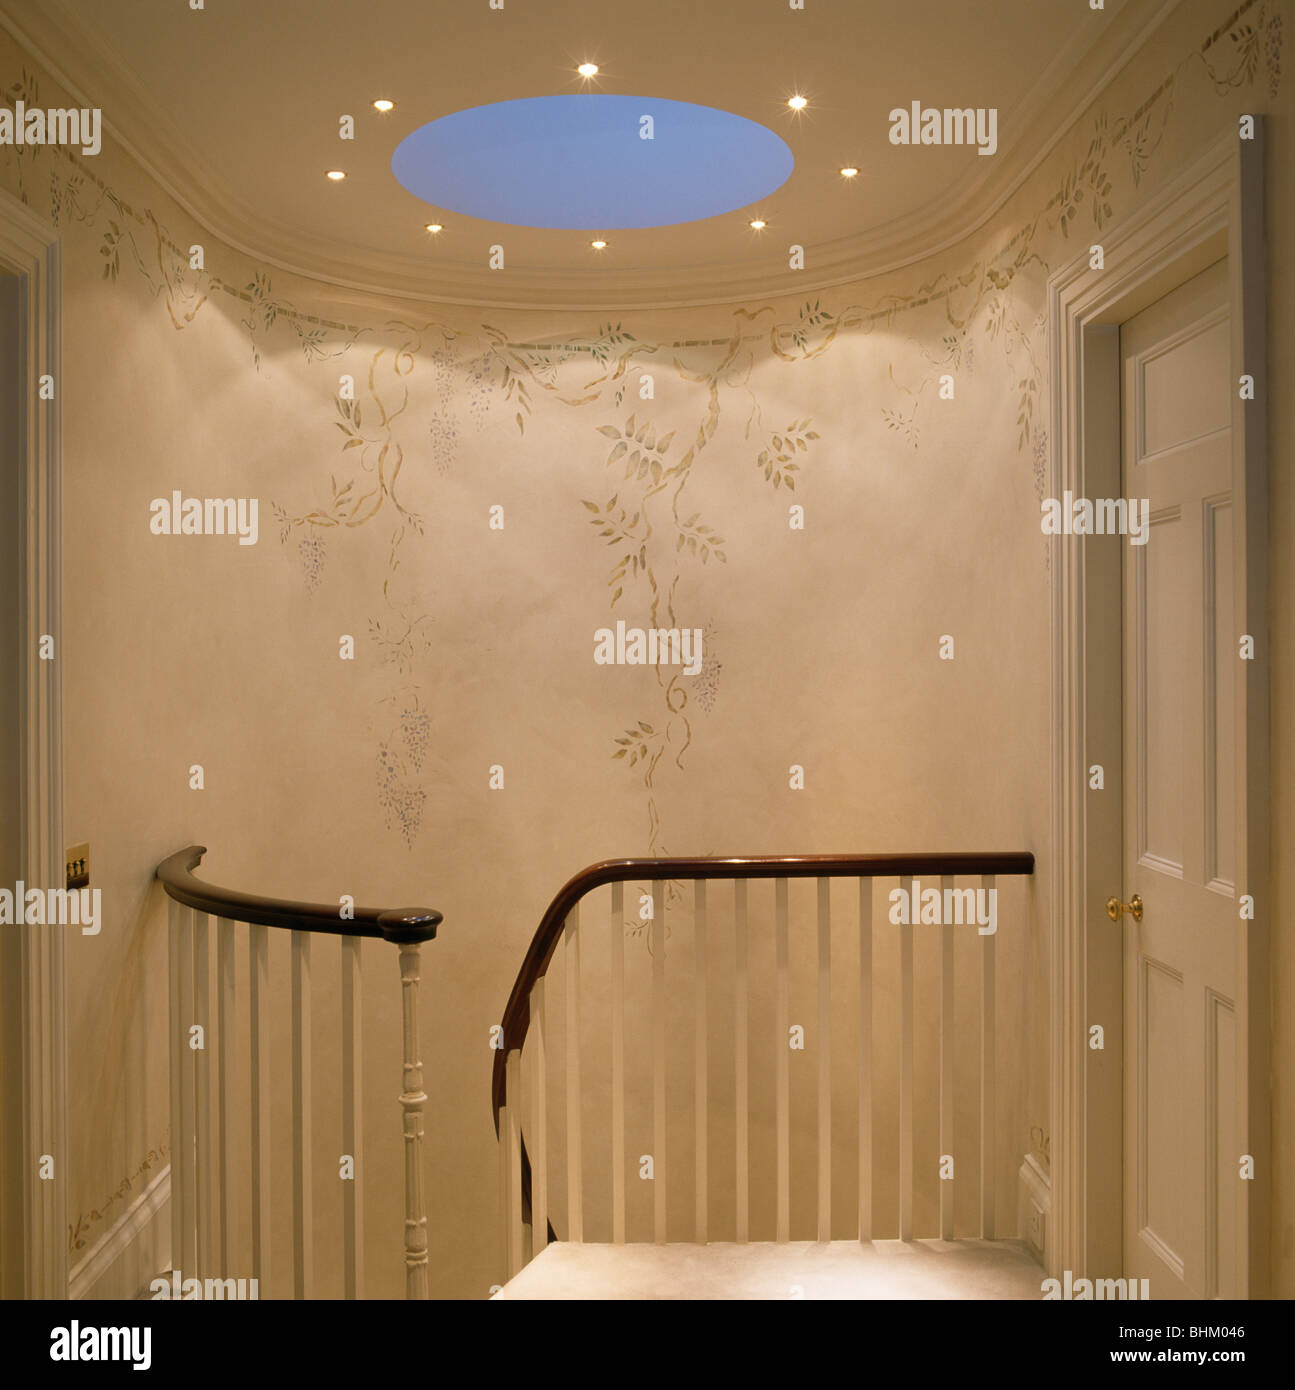 Stencilling walls images home wall decoration ideas circular skylight above staircase with hand stenciled walls stock circular skylight above staircase with hand stenciled amipublicfo Images